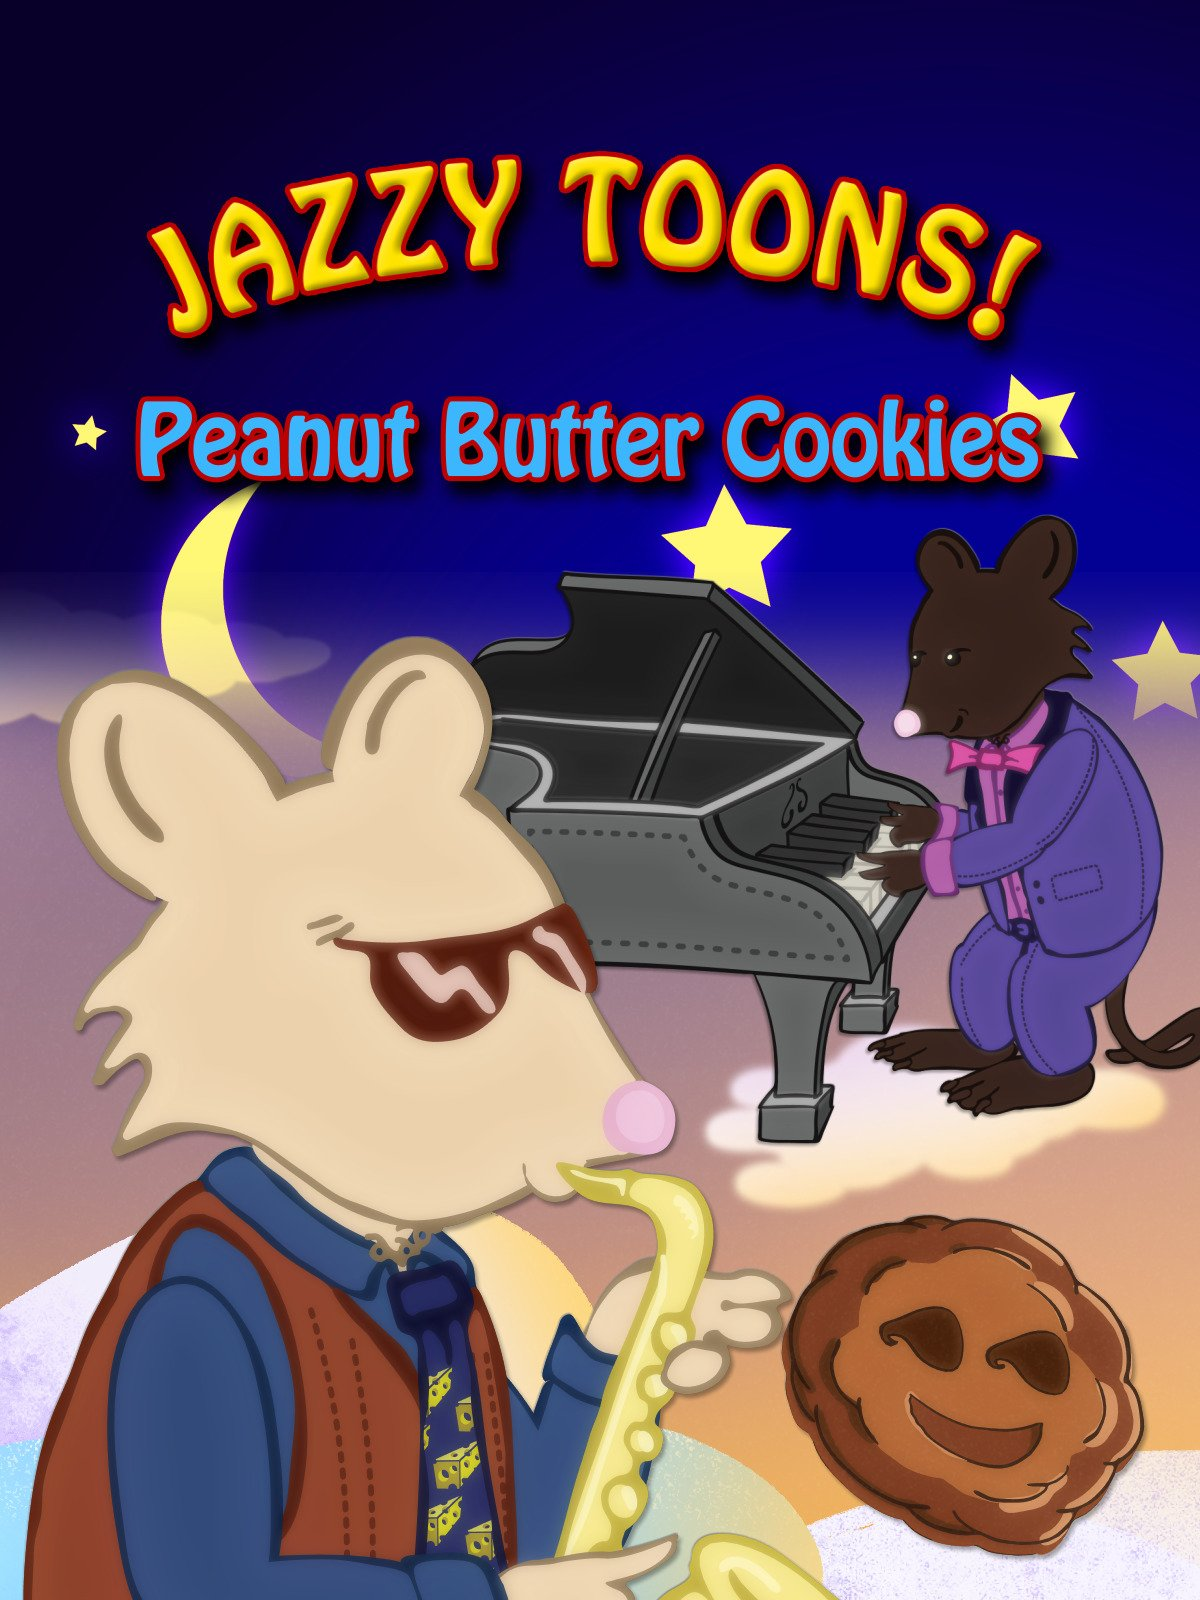 Jazzy Toons! Peanut Butter Cookies